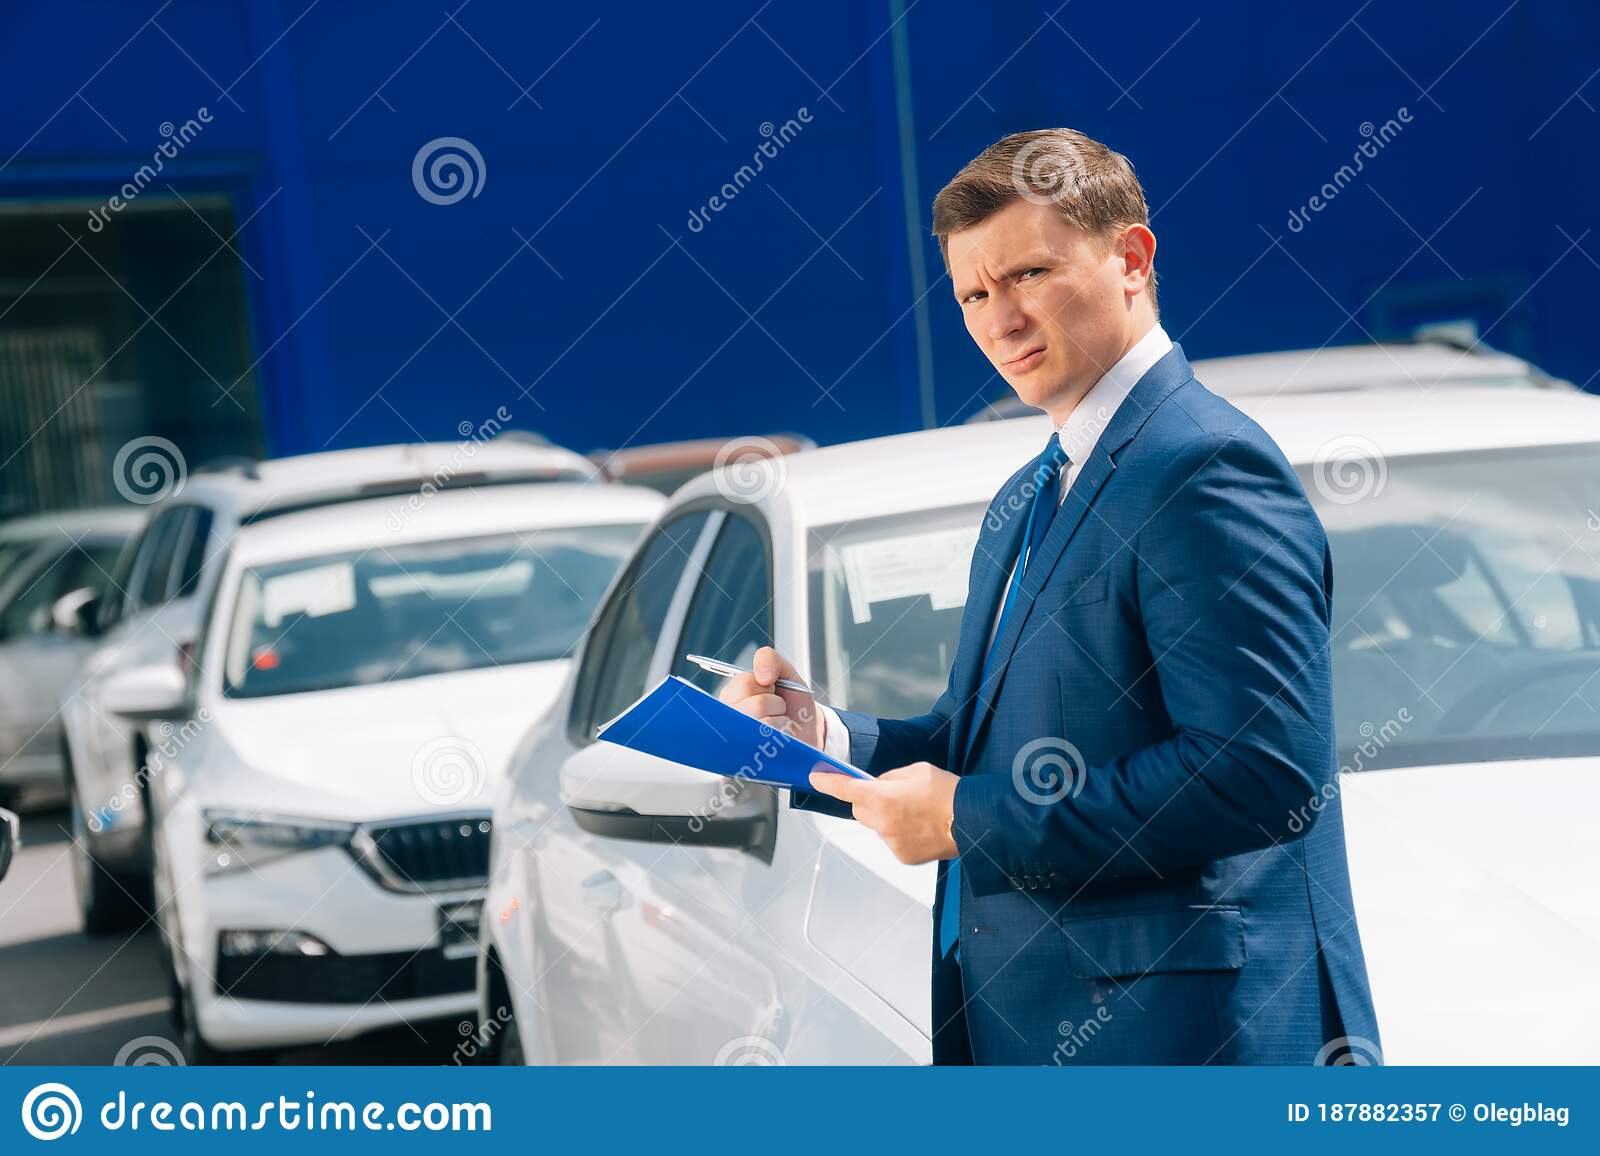 A Man Stands Near The Transport The Agent Holds The Car Keys And Tablet Next To The Car Stock Image Image Of Agency Crash 187882357